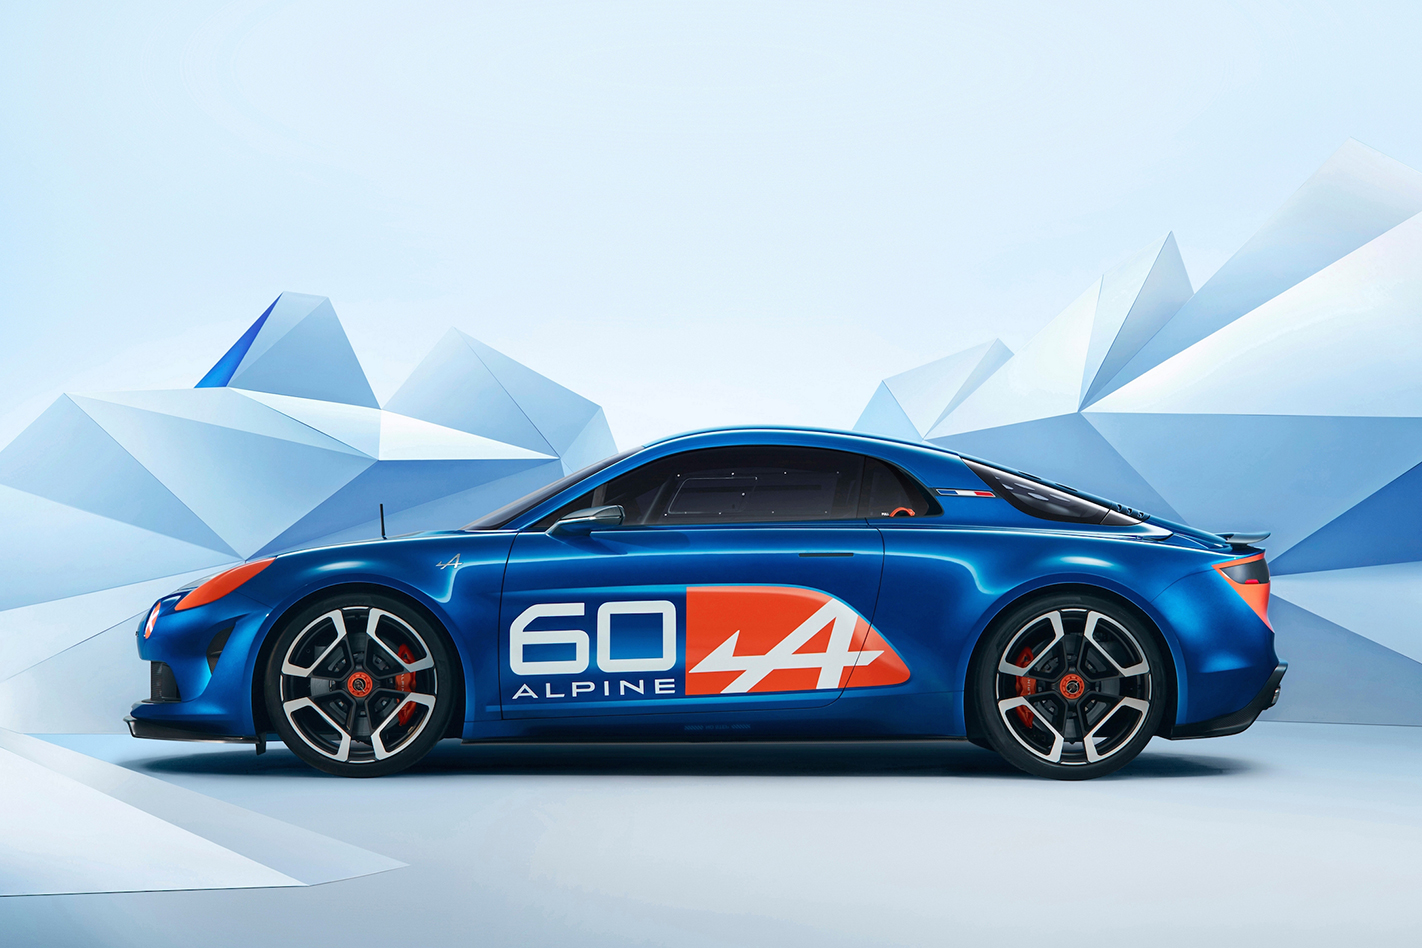 Alpine Celebration concept